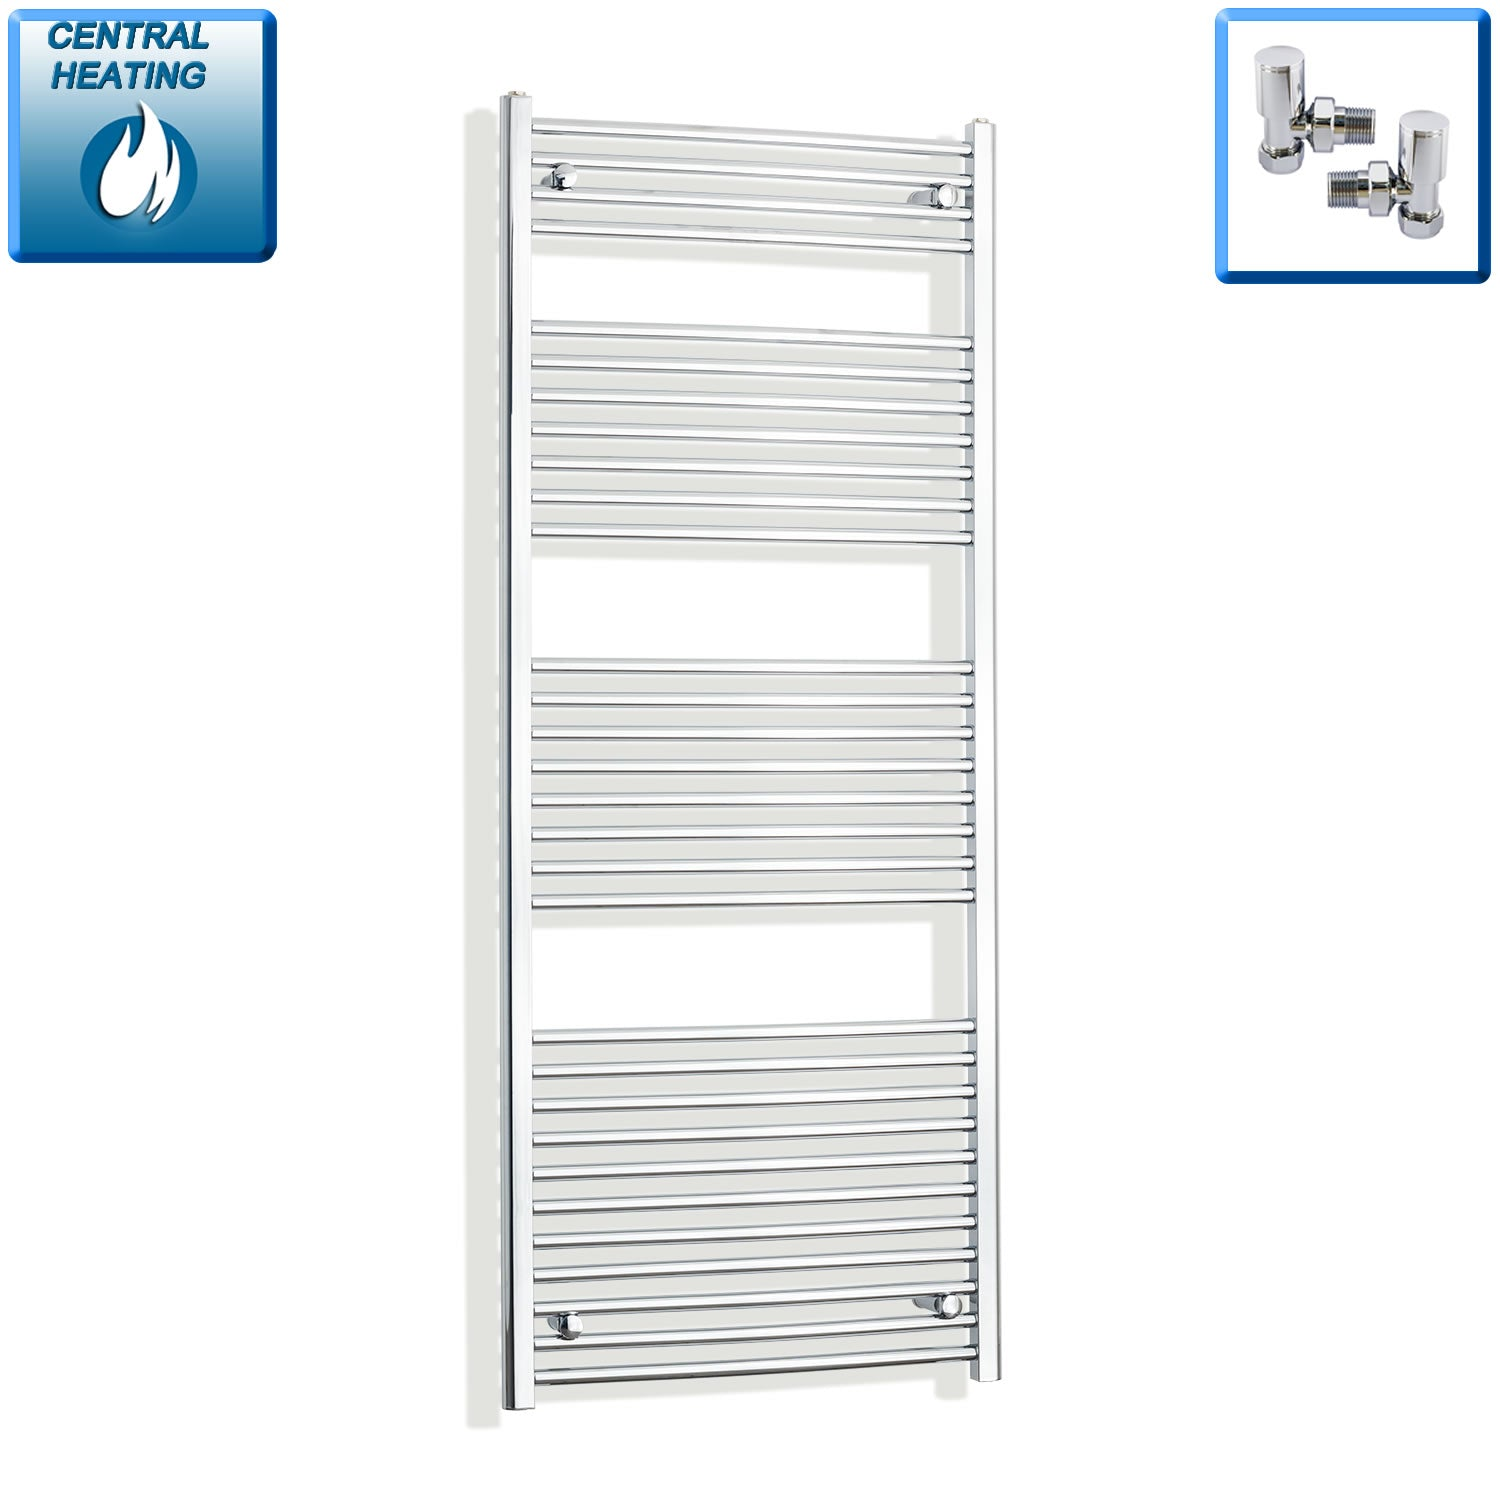 700mm x 1700mm High Curved Chrome Towel Rail Radiator With Angled Valve